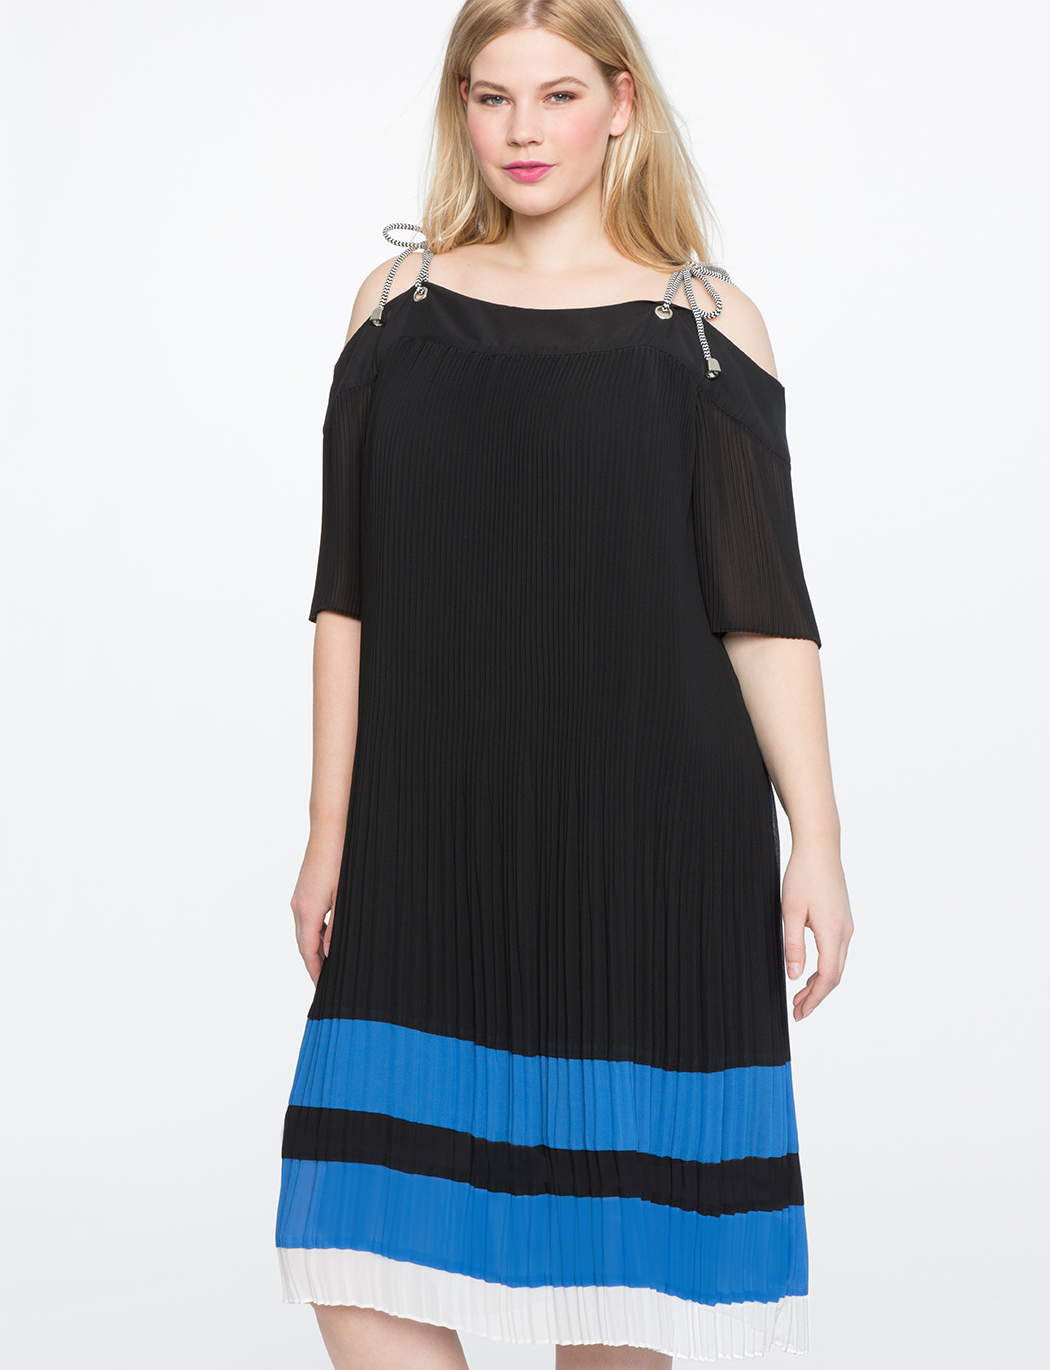 d0651452471 Cold Shoulder Pleated Dress | Women's Plus Size Dresses | ELOQUII